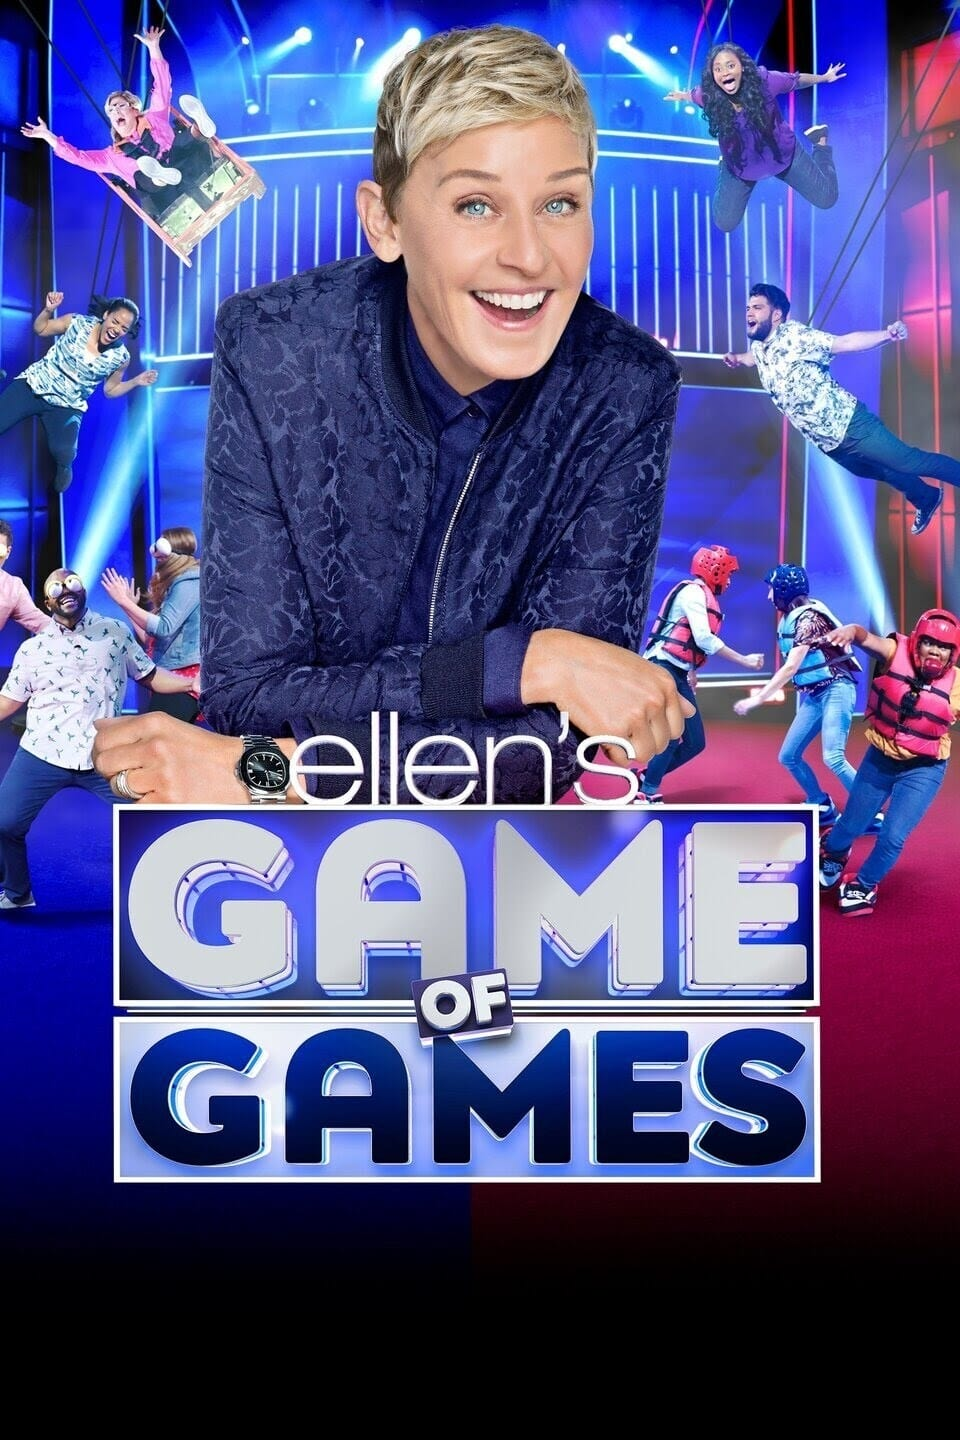 Ellen's Game of Games (2017)